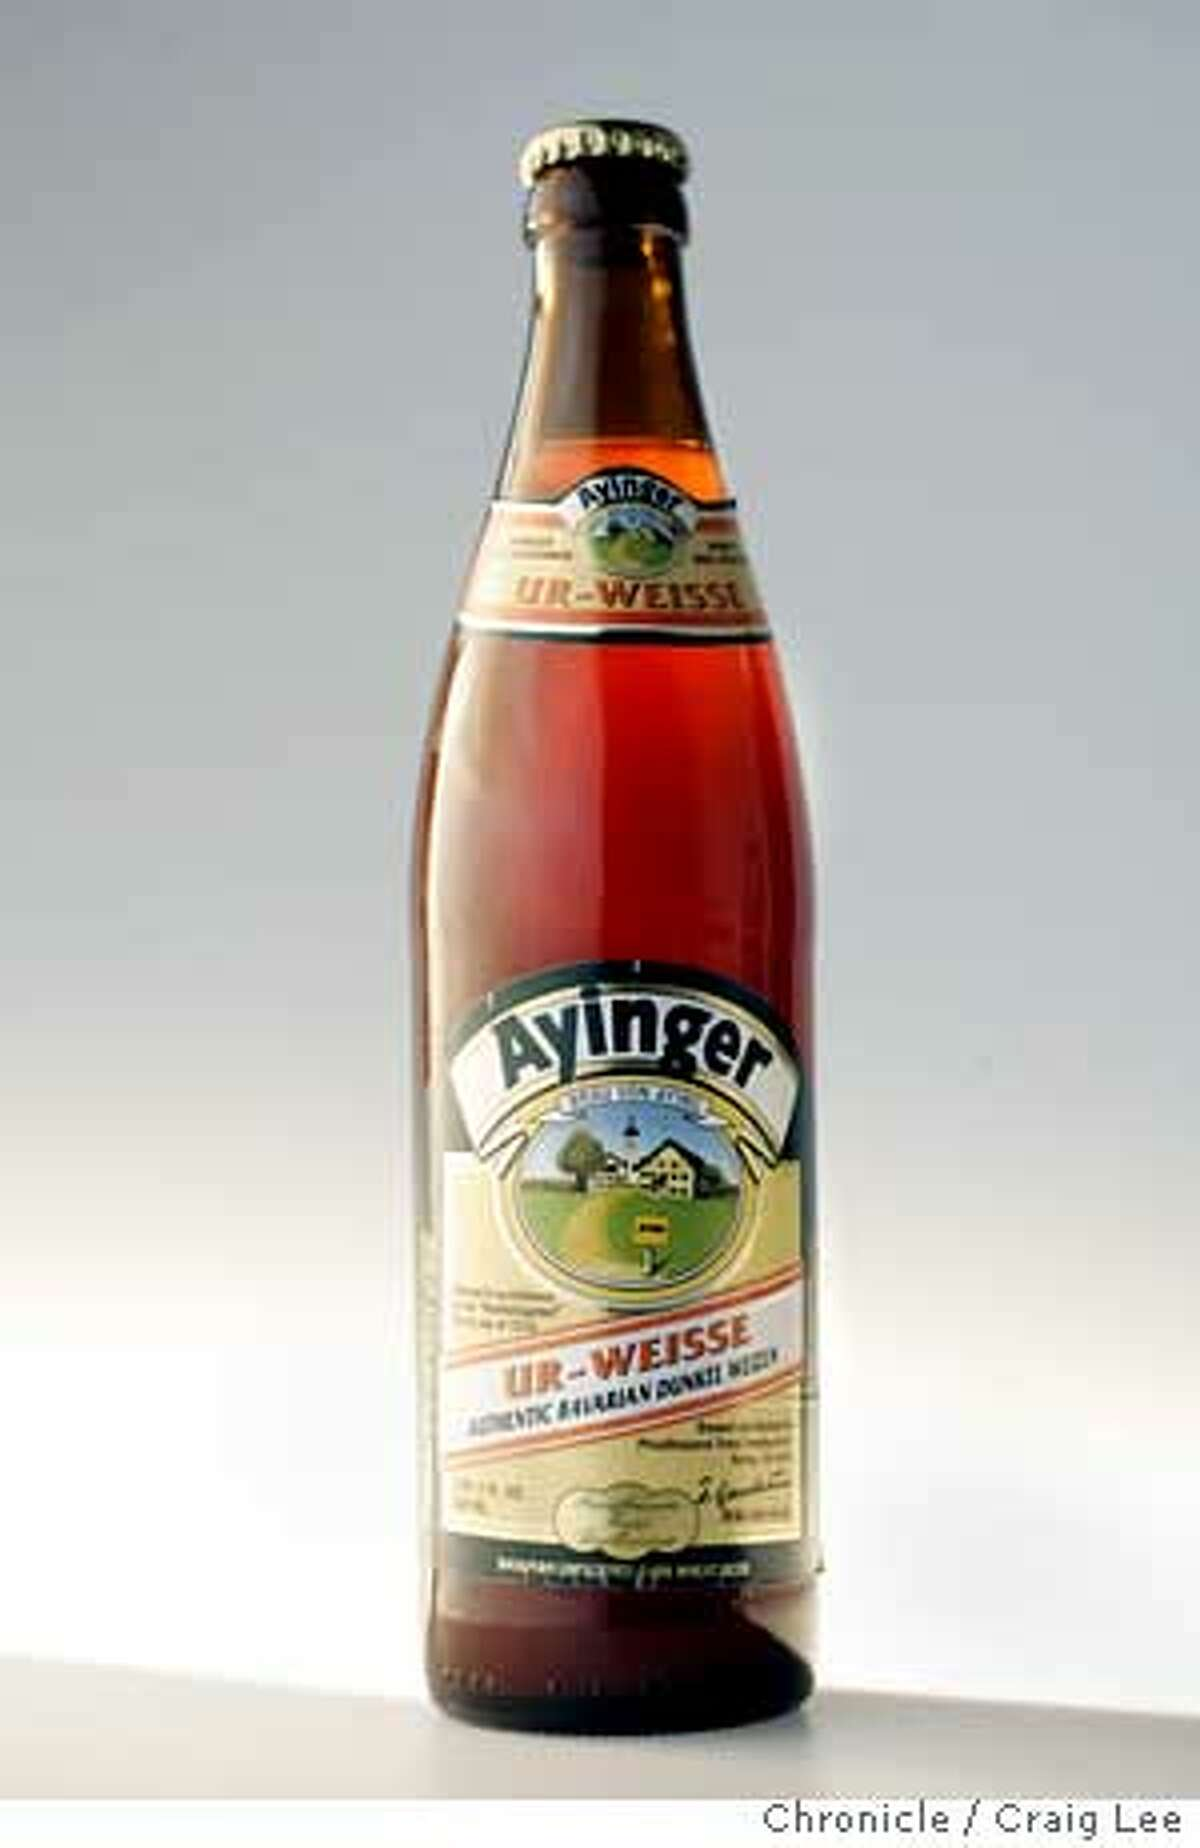 Beer of the month. Ayinger Ur-Weisse German dark wheat beer. Event on 4/7/05 in San Francisco. Craig Lee / The Chronicle